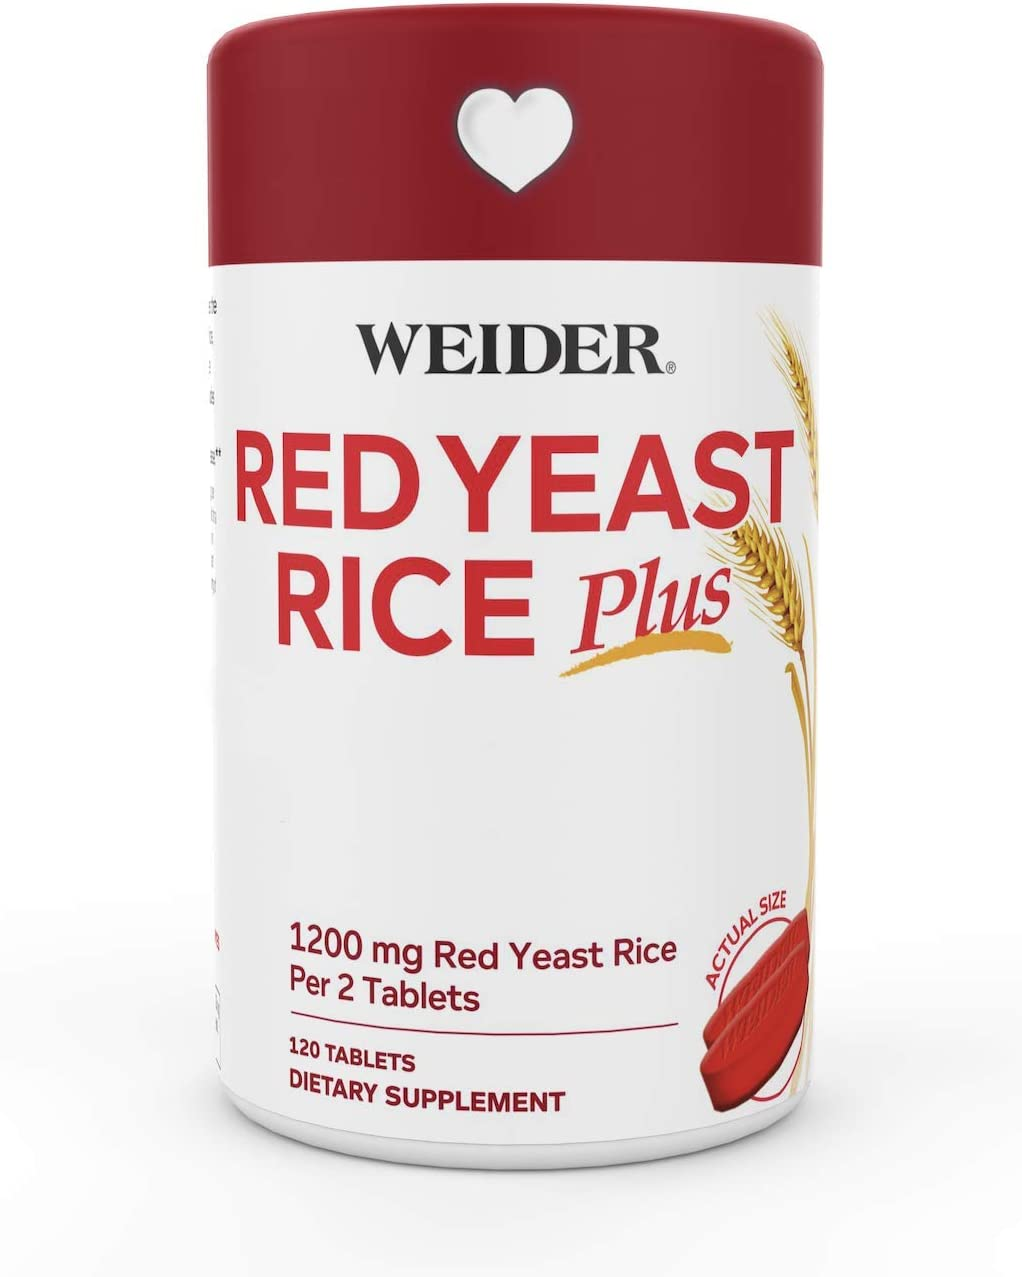 Weider Red Yeast Rice Plus 1200mg – With 850mg of Natural Phytosterols- Gluten FREE – One Month Supply